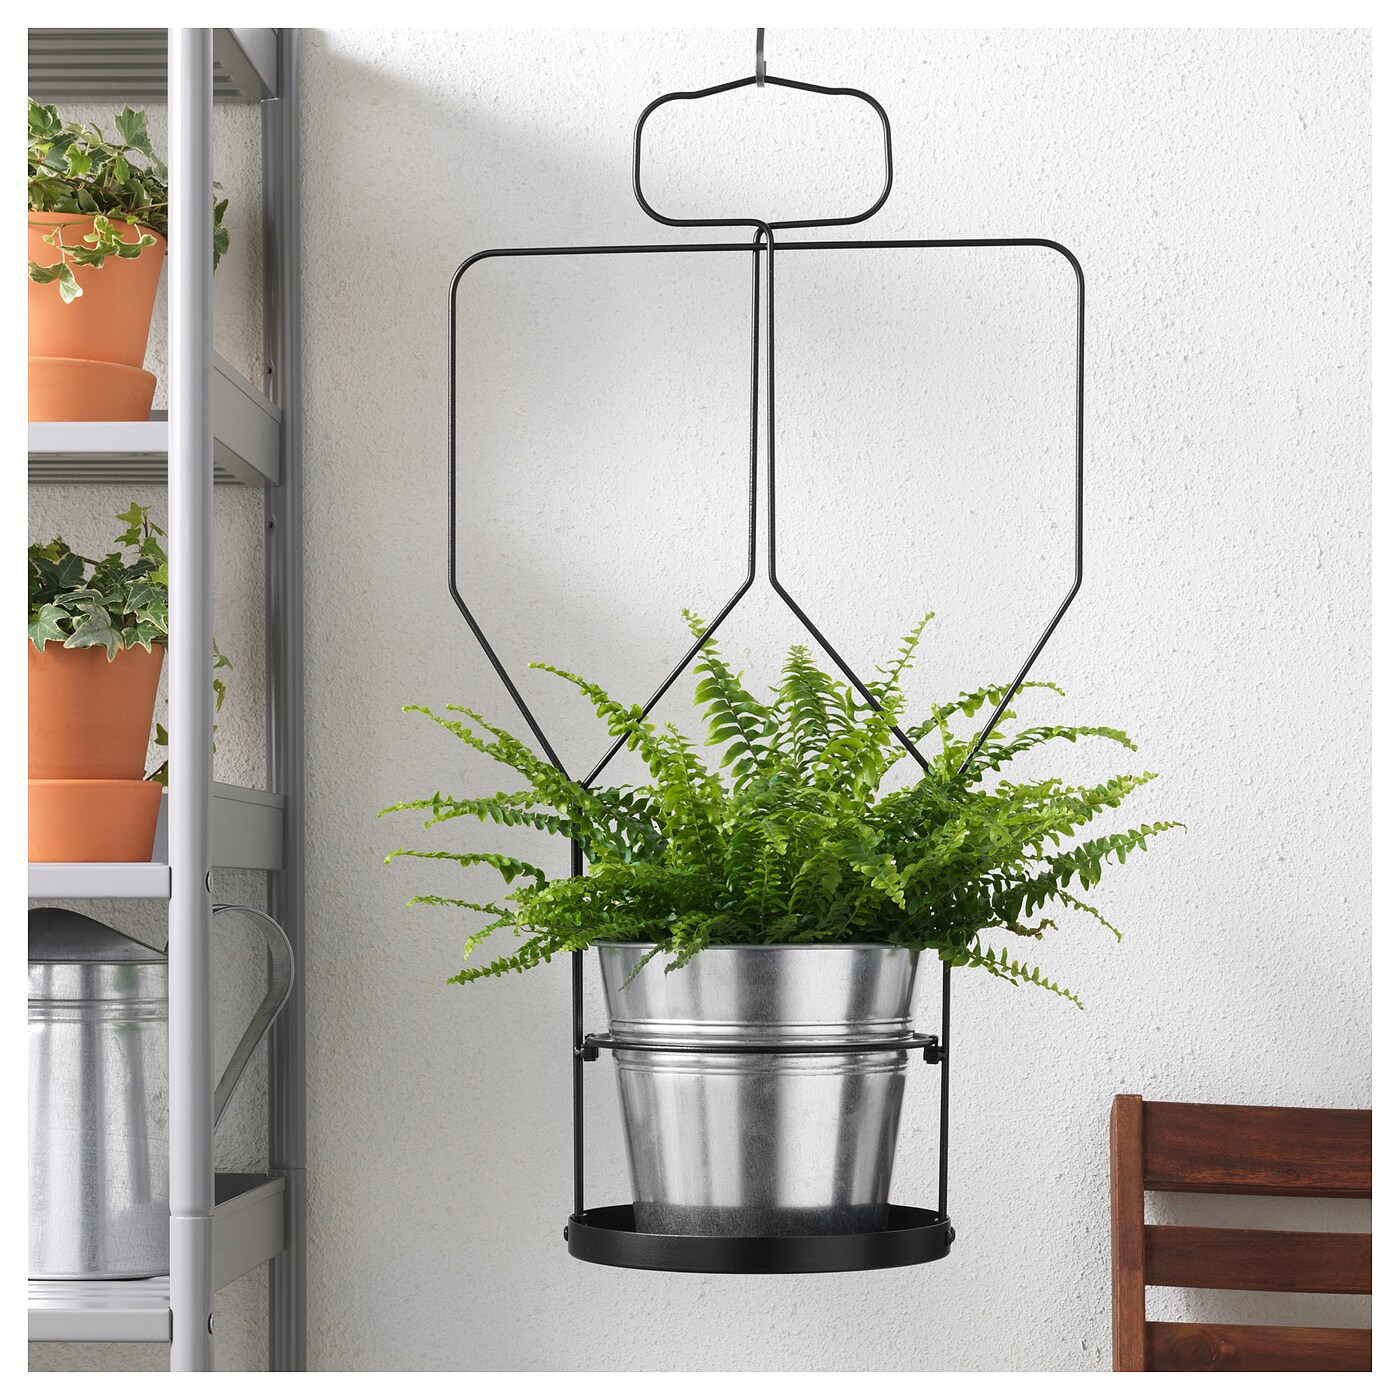 Hangplant Ikea Sommar 2018 Plant Pot Hanger With Trellis In Outdoor Black